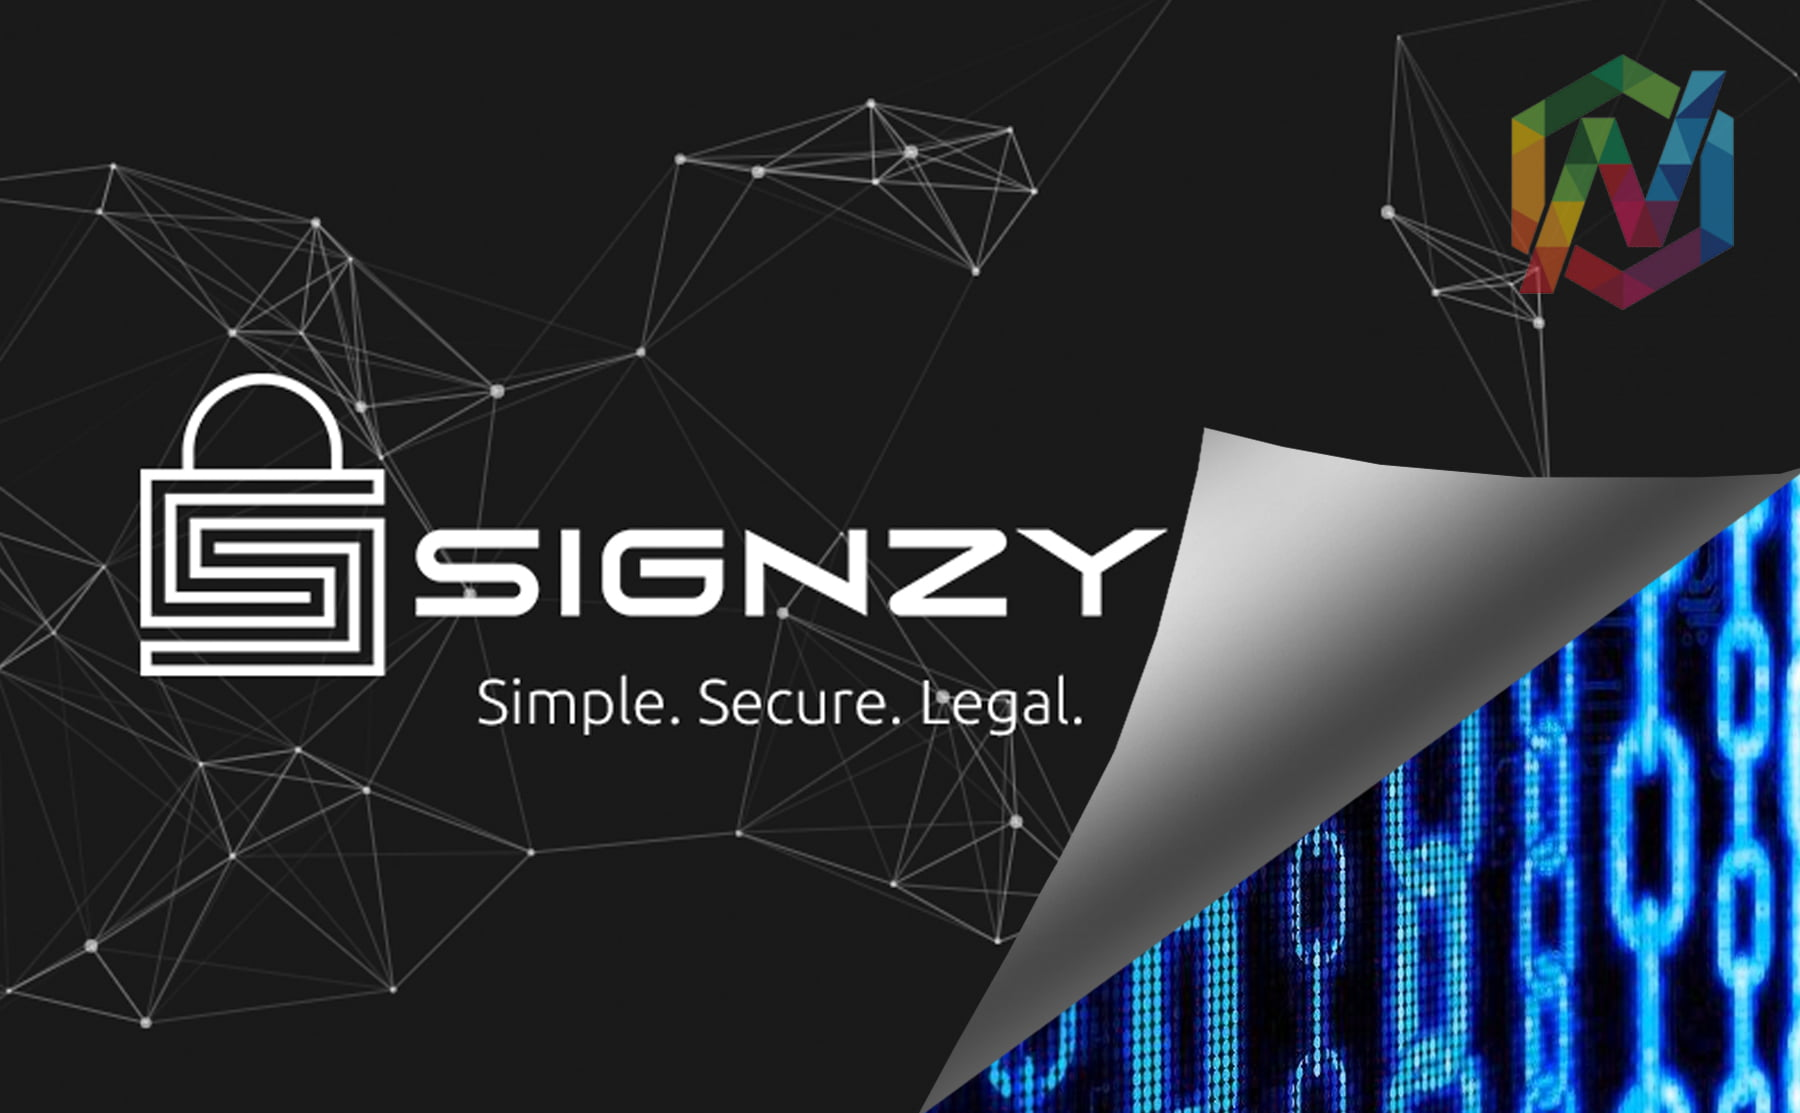 signzy, watson, cryptocurrency technology, blockchain, ibm